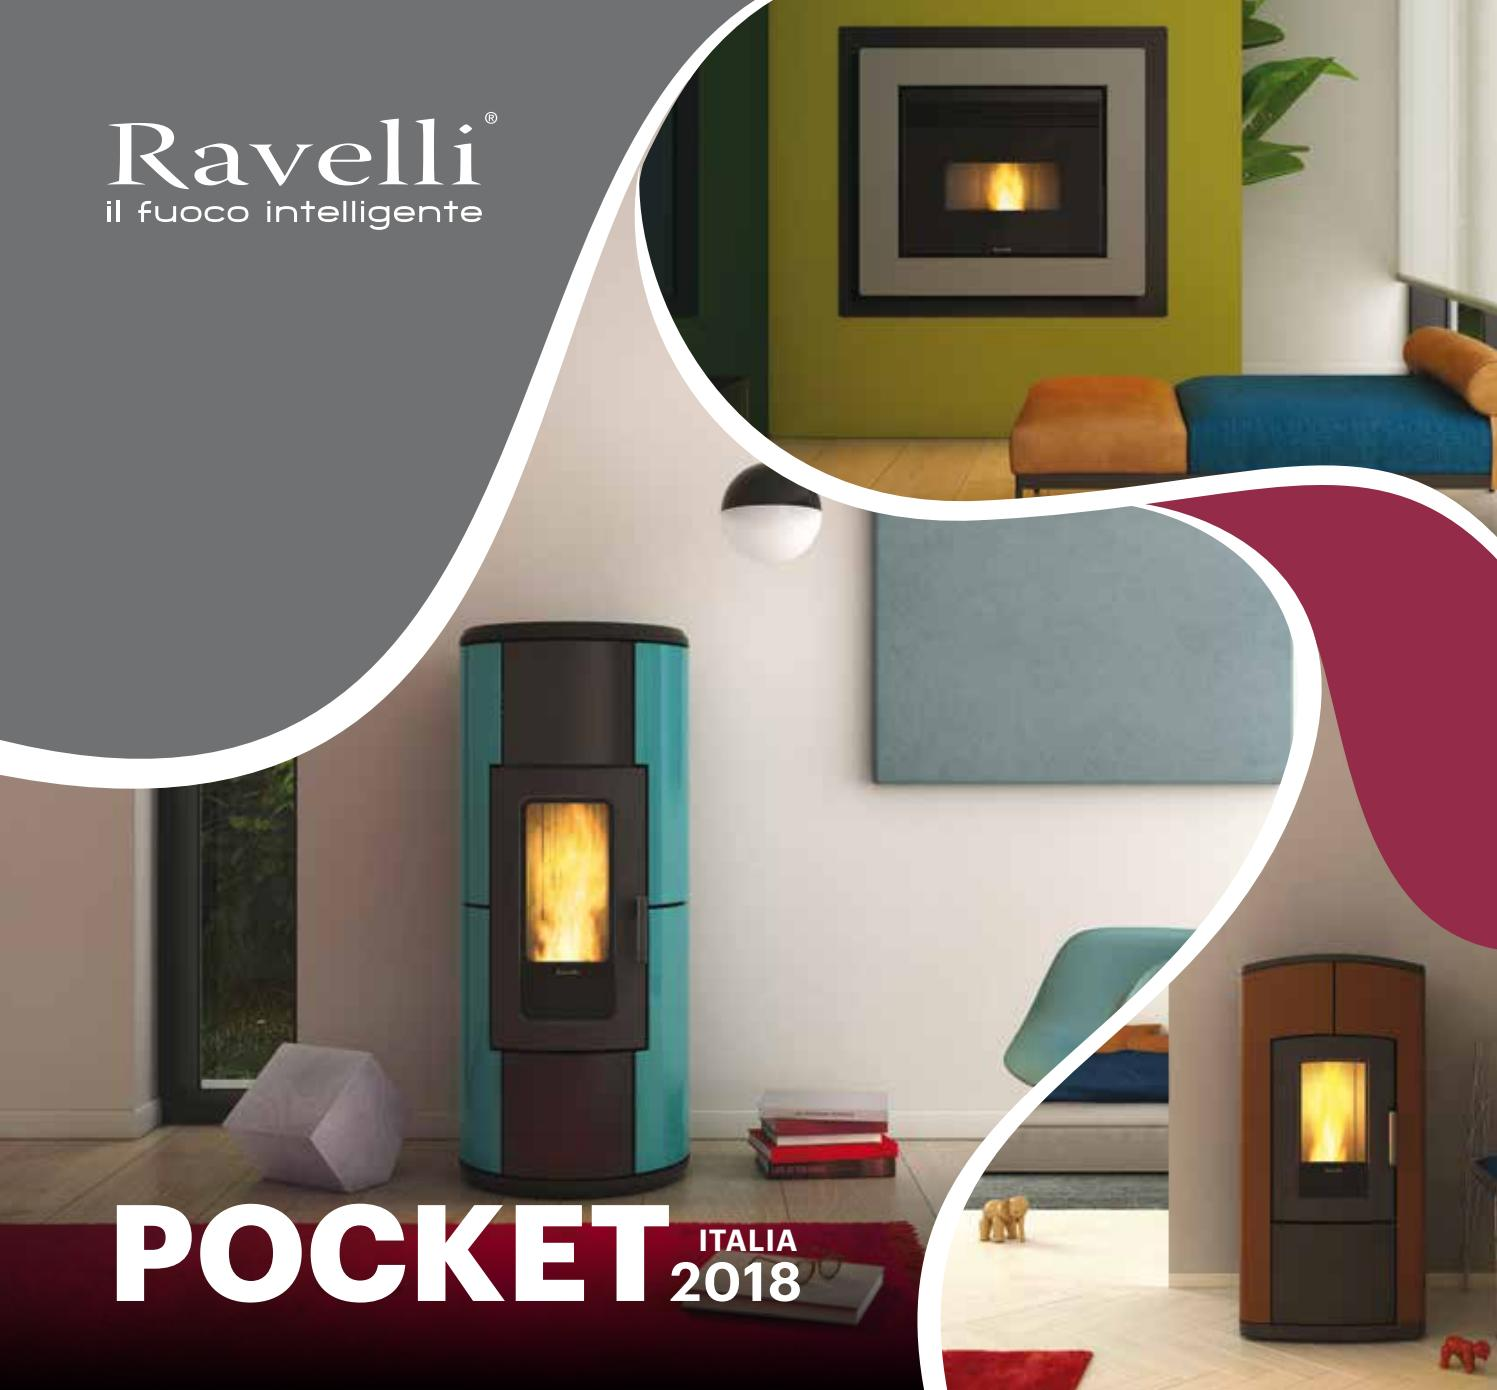 Idea Camino Borgosatollo Orari ravelli - catalogo 2018 by idea caminetti - issuu